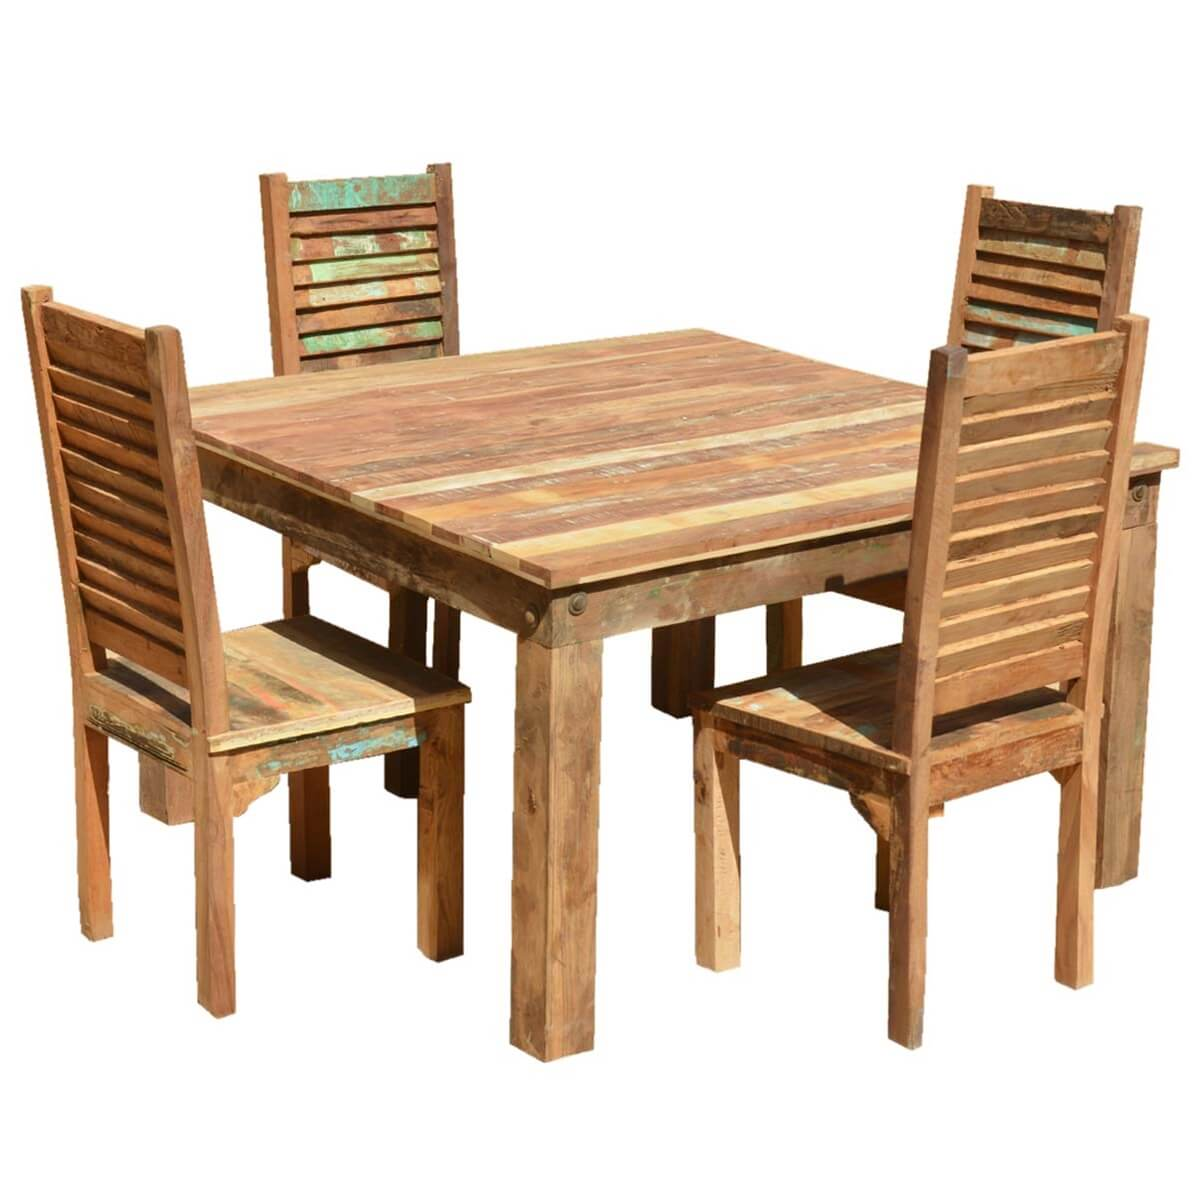 barnwood dining room chairs director chair covers freedom ohio reclaimed wood furniture table and shutter back